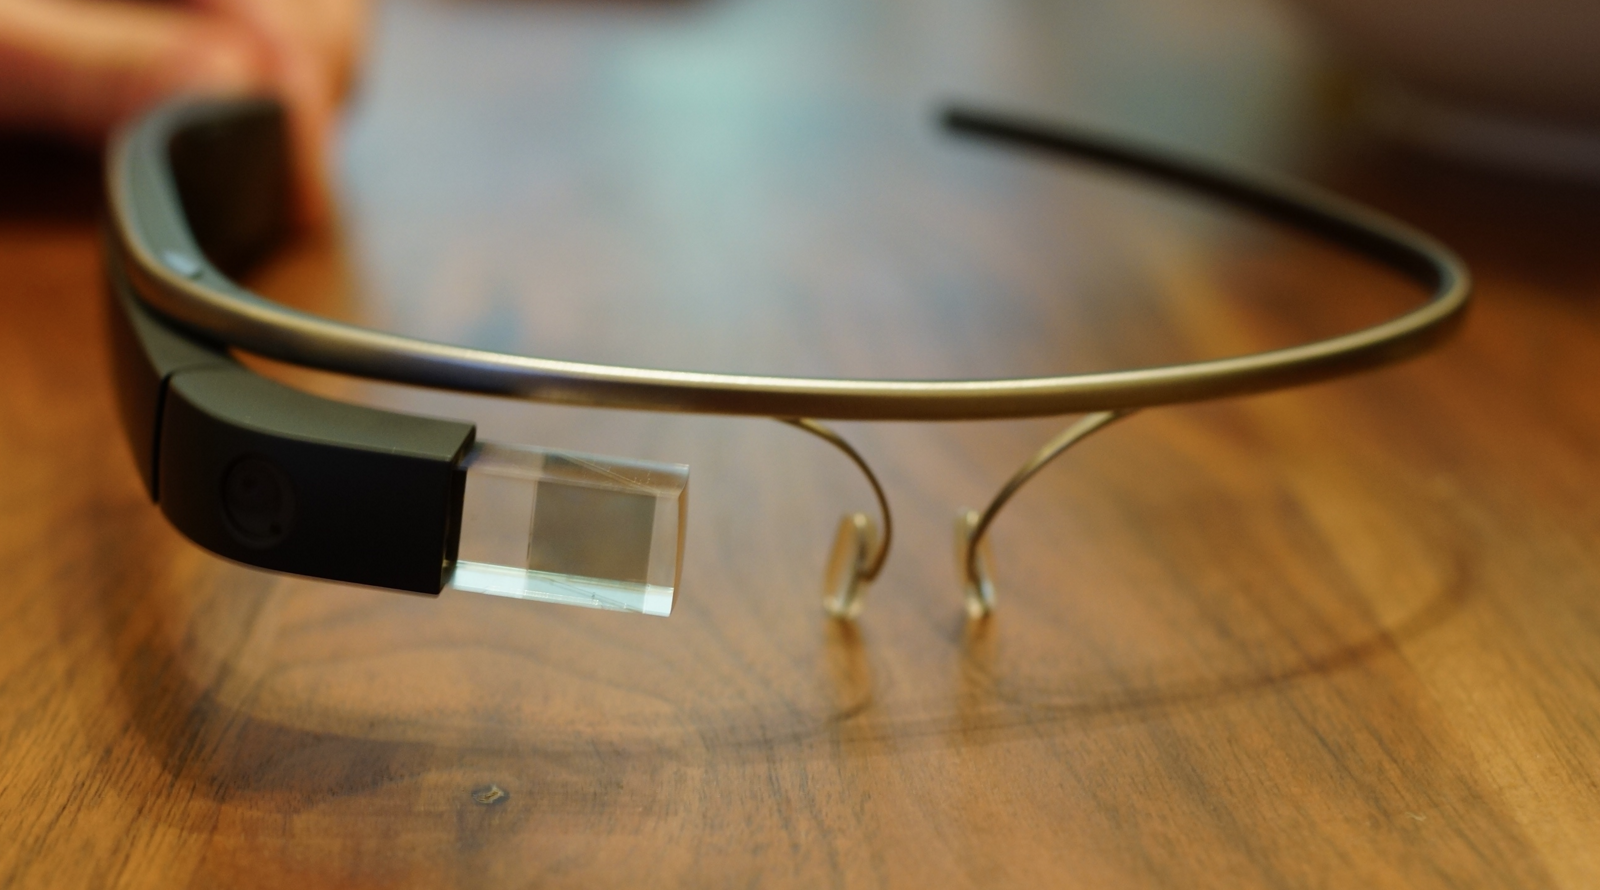 Giving Autistic Kids Superpowers Via Google Glass